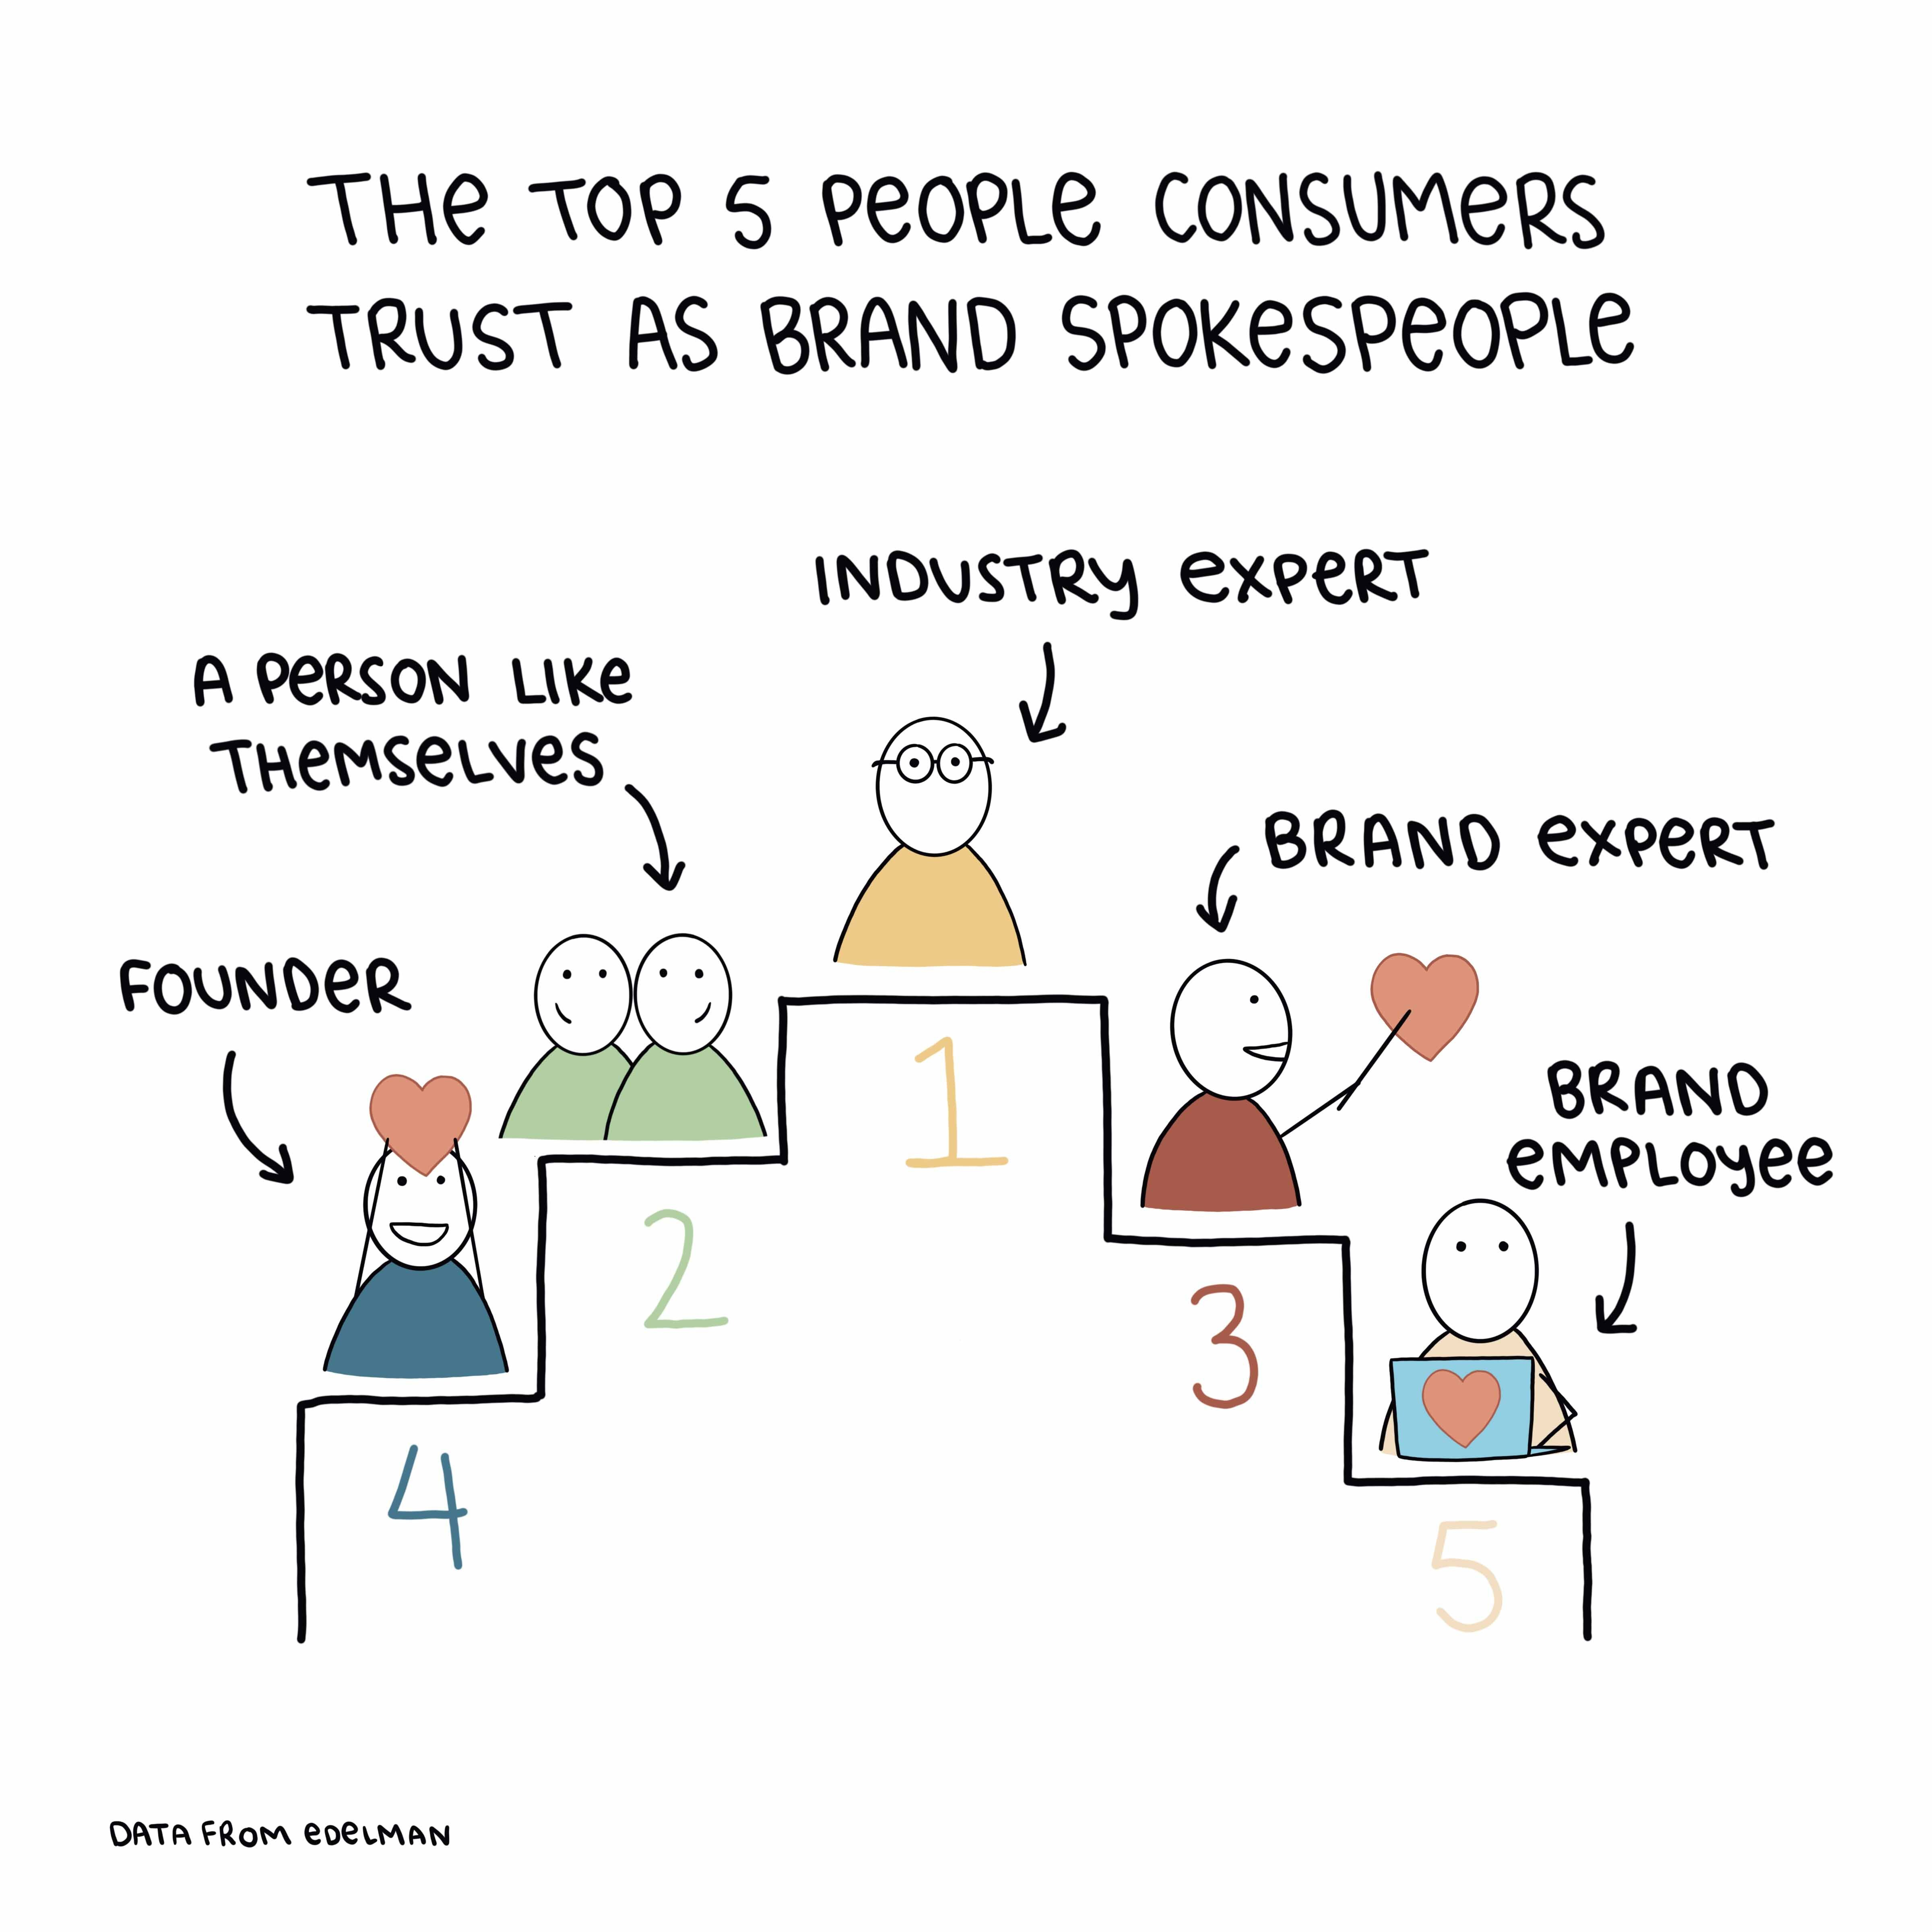 The top five brand spokespeople consumers trust